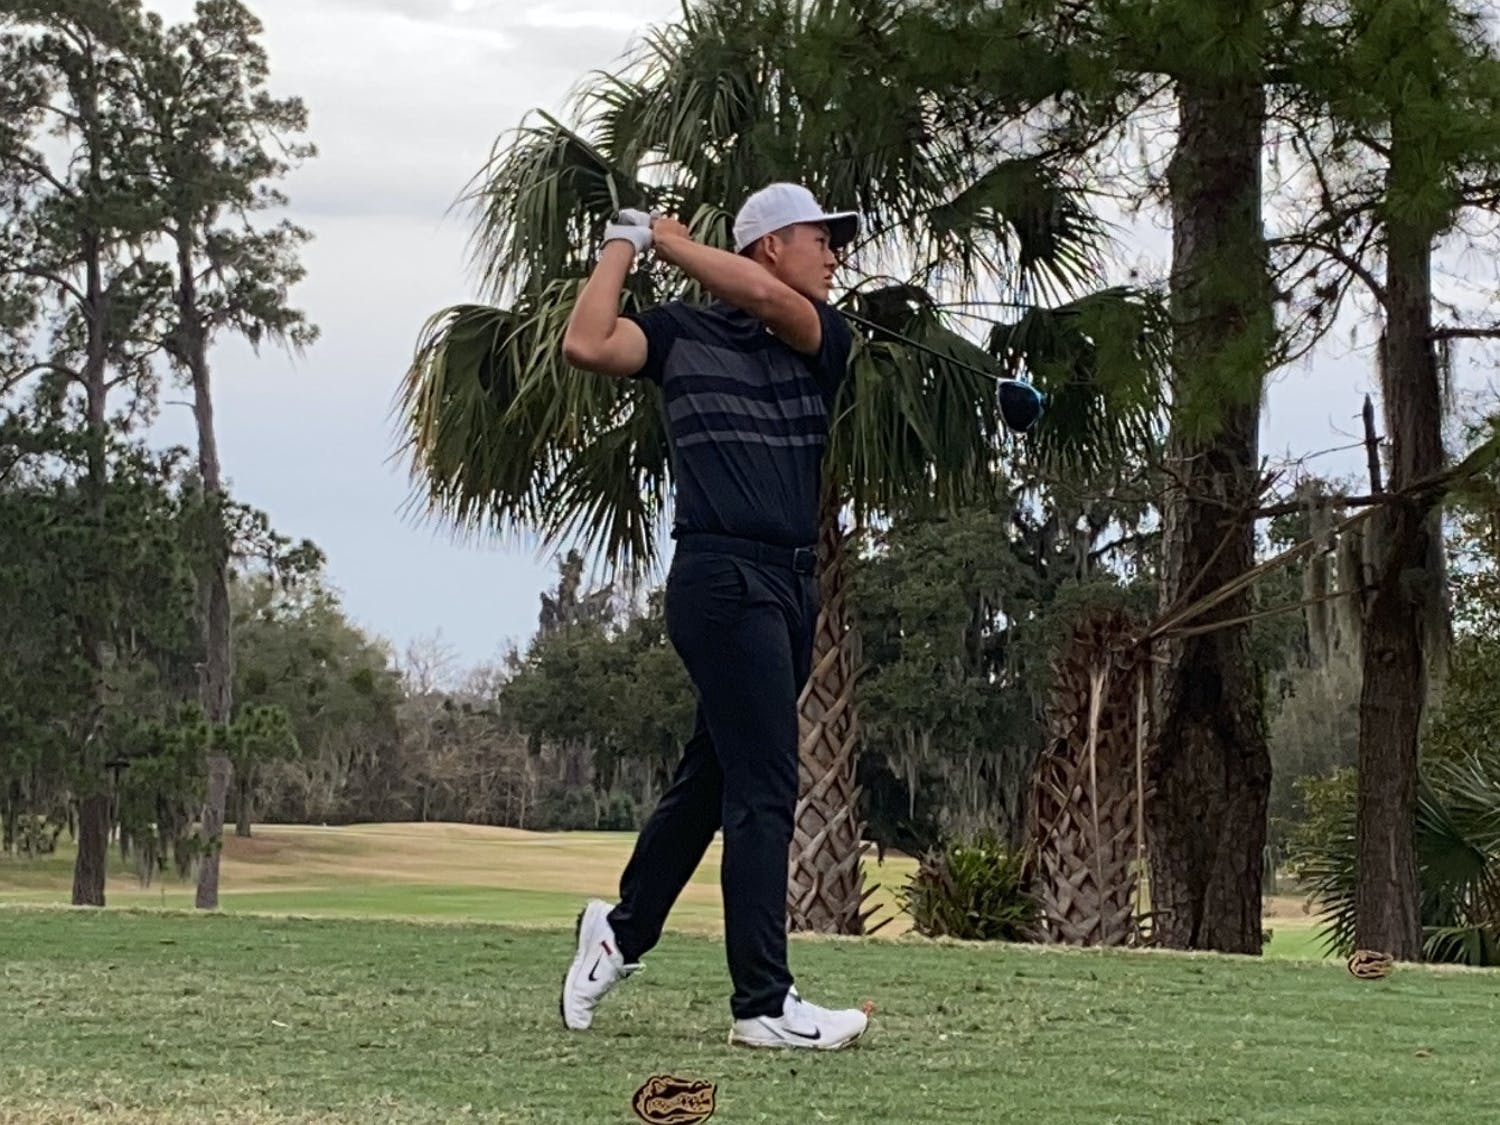 Led by sophomores Yuxin Lin and Ricky Castillo, Florida carded a 15-under-par round Saturday afternoon after shooting 14-under-par the two rounds prior.